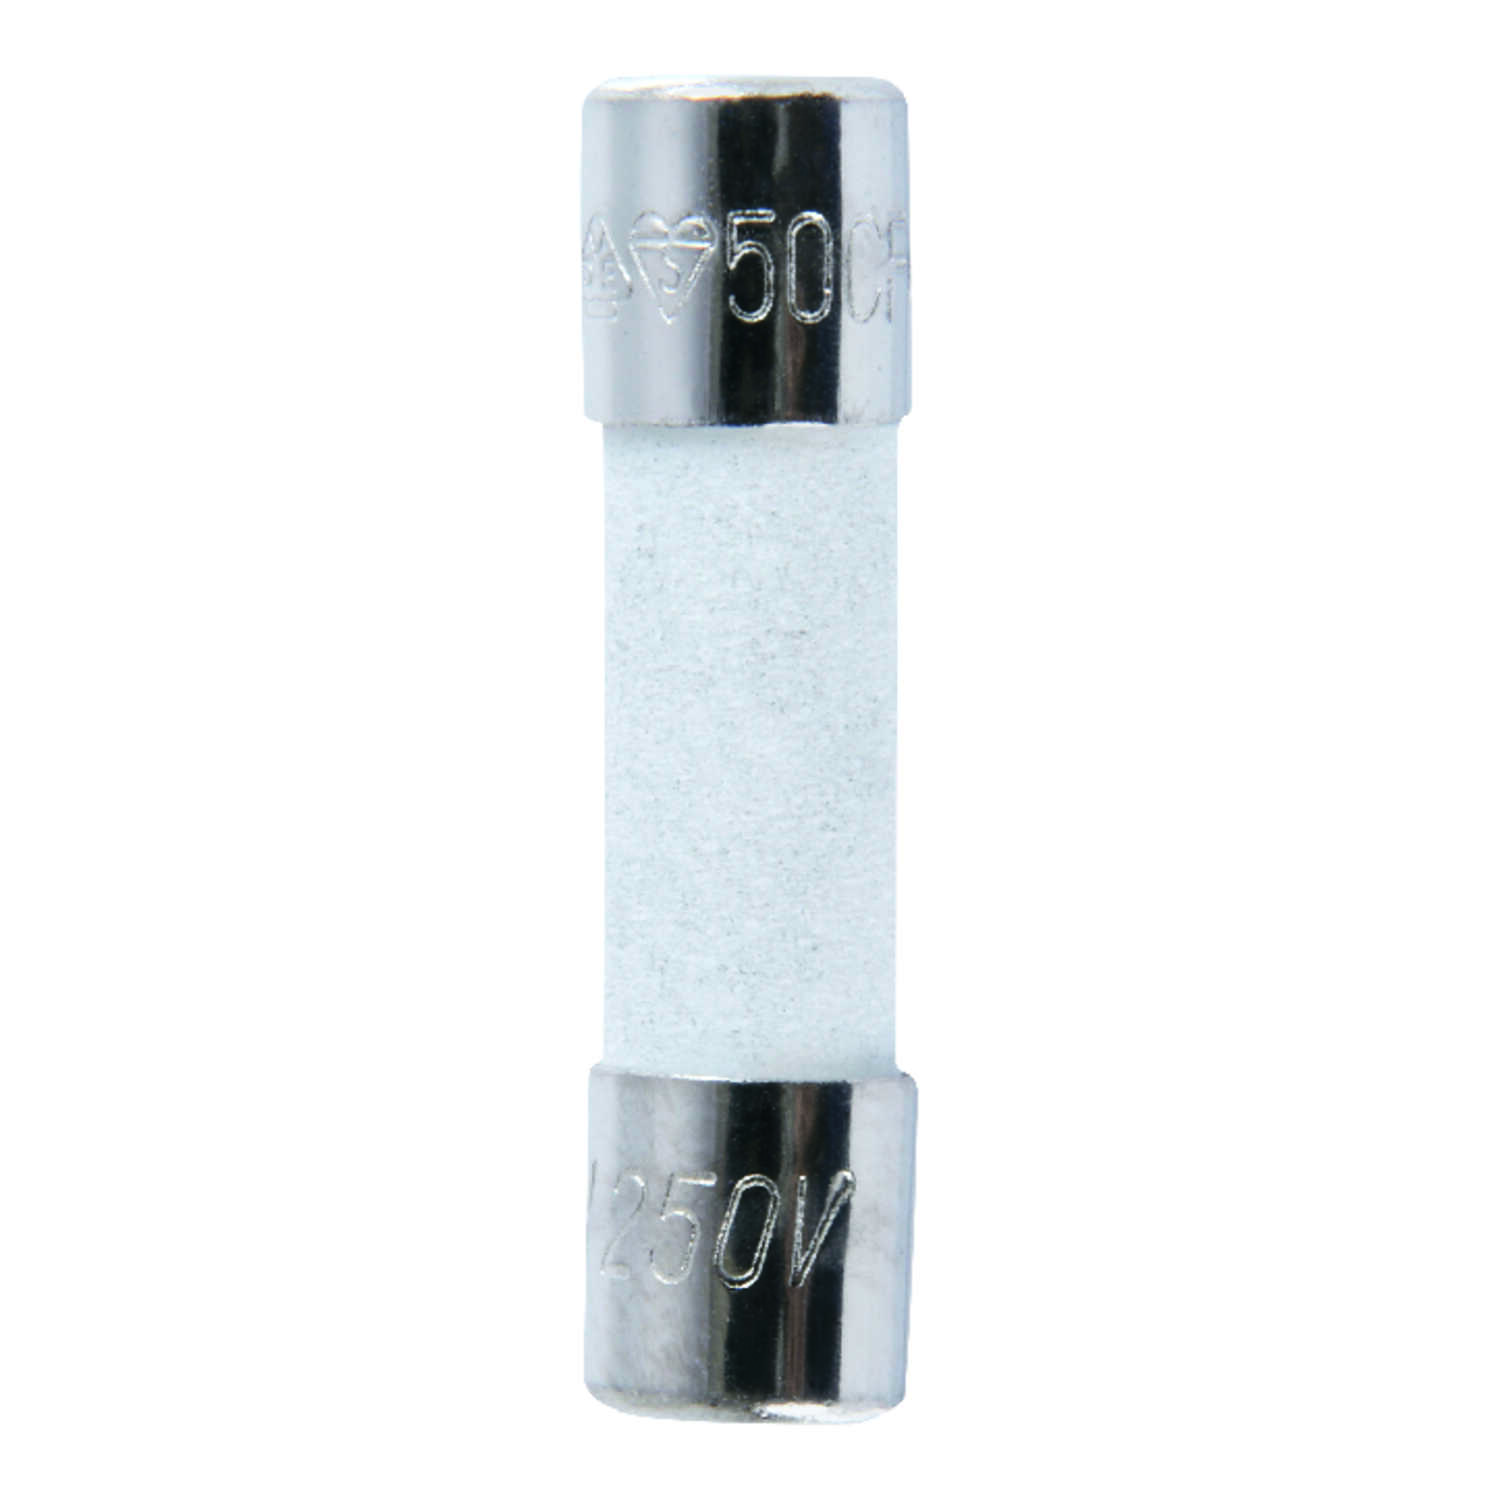 Jandorf  S501  8 amps 250 volts Ceramic  Fast Acting Fuse  2 pk